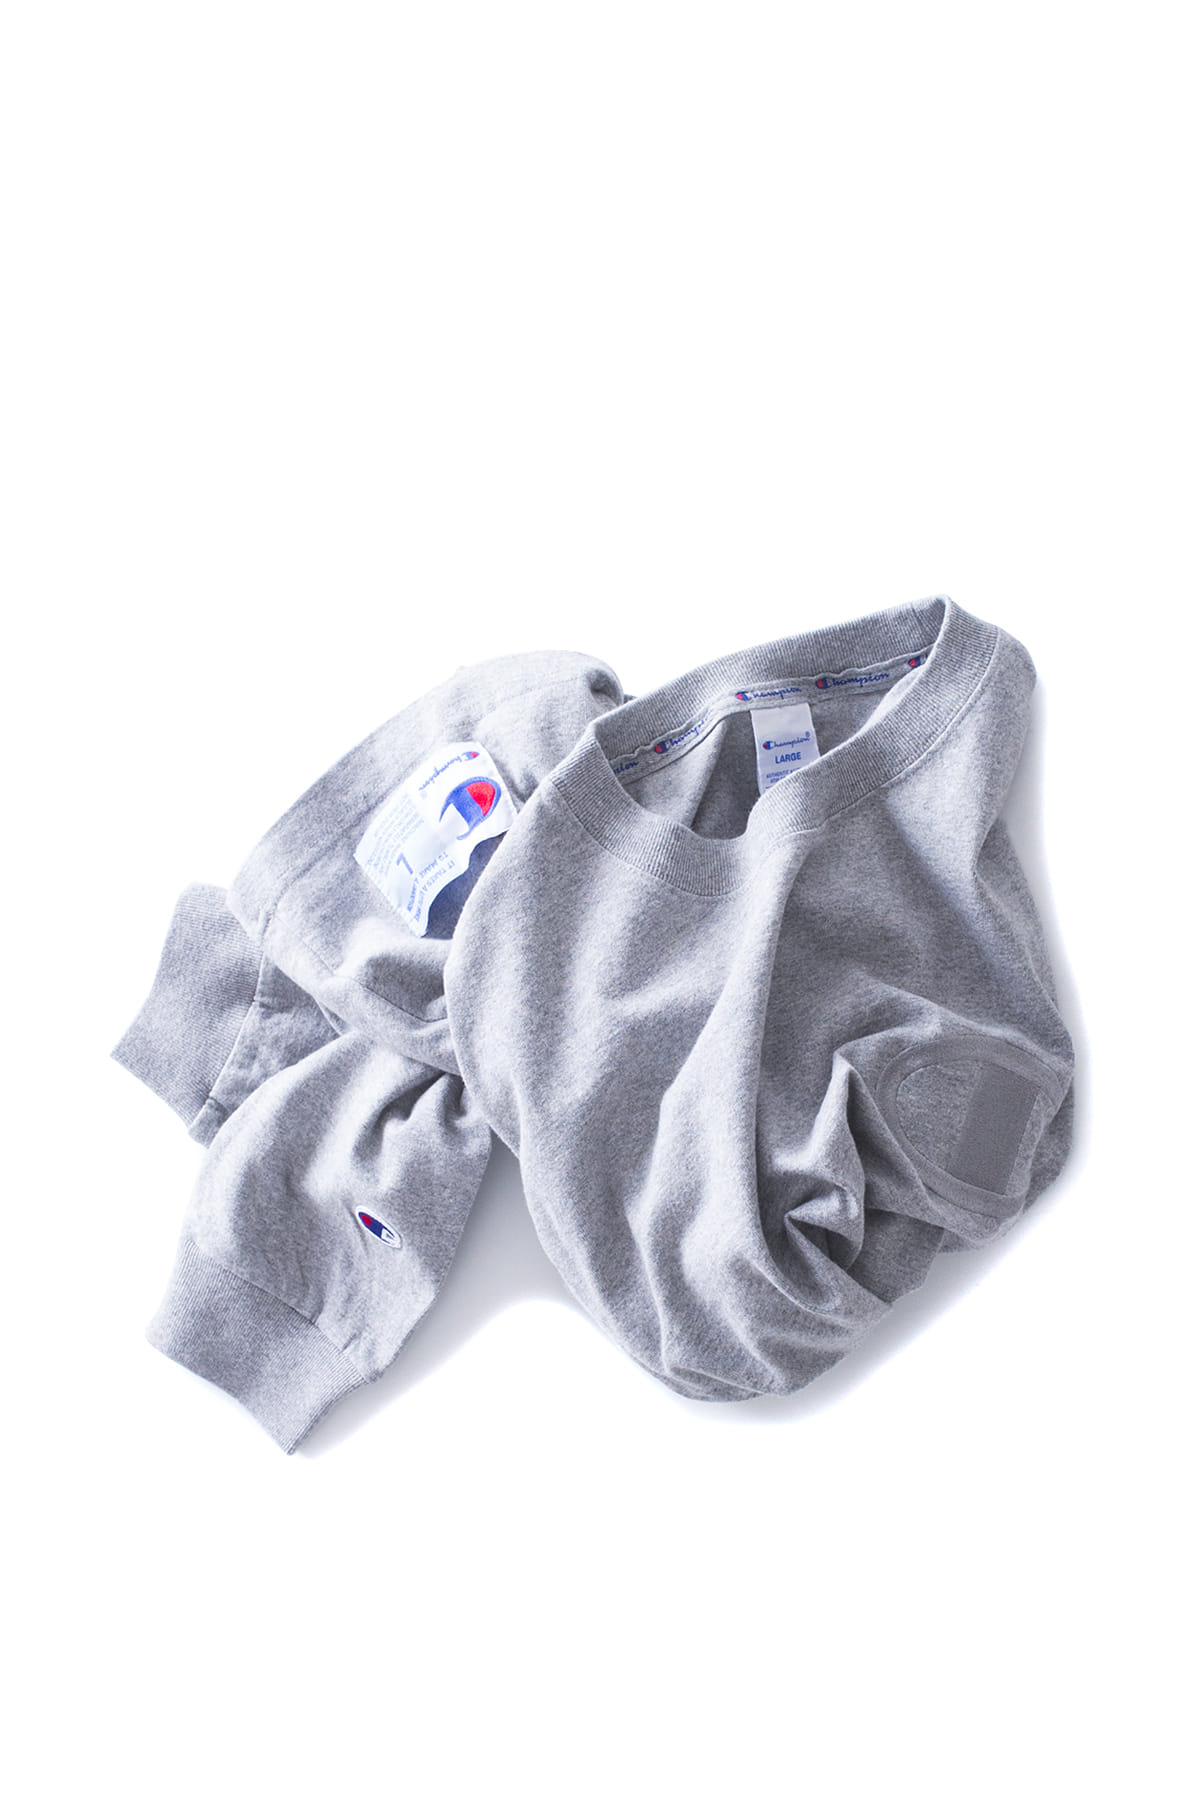 Champion : Action Style Big Logo Long Sleeve T-Shirt (Oxford Gray)